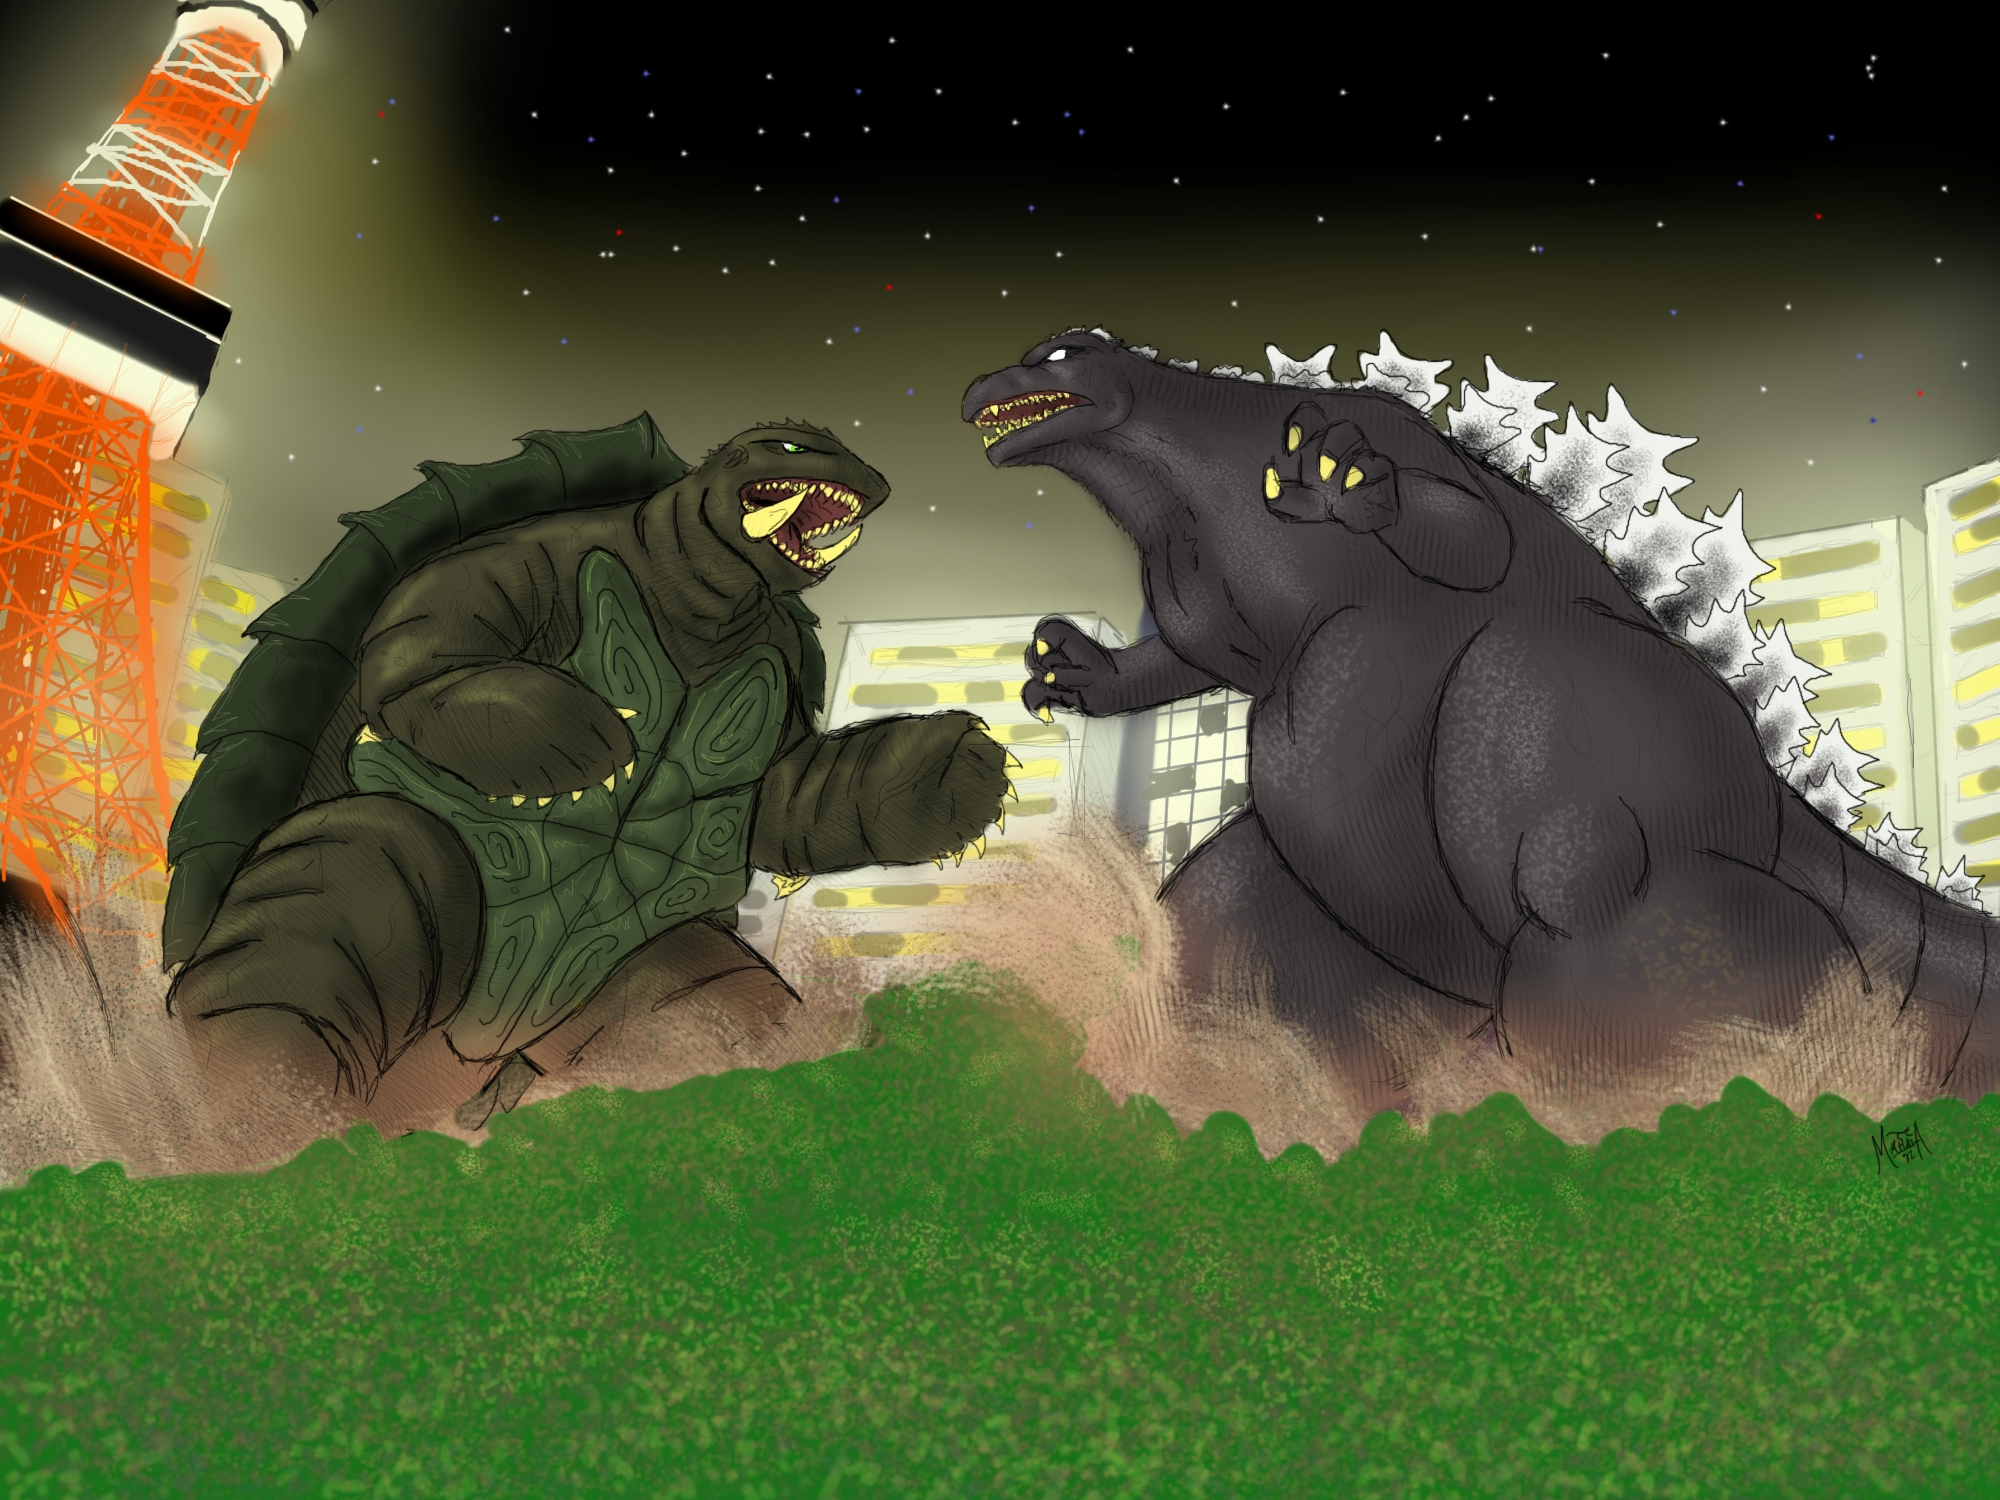 Godzilla vs Gamera by PickledGenius